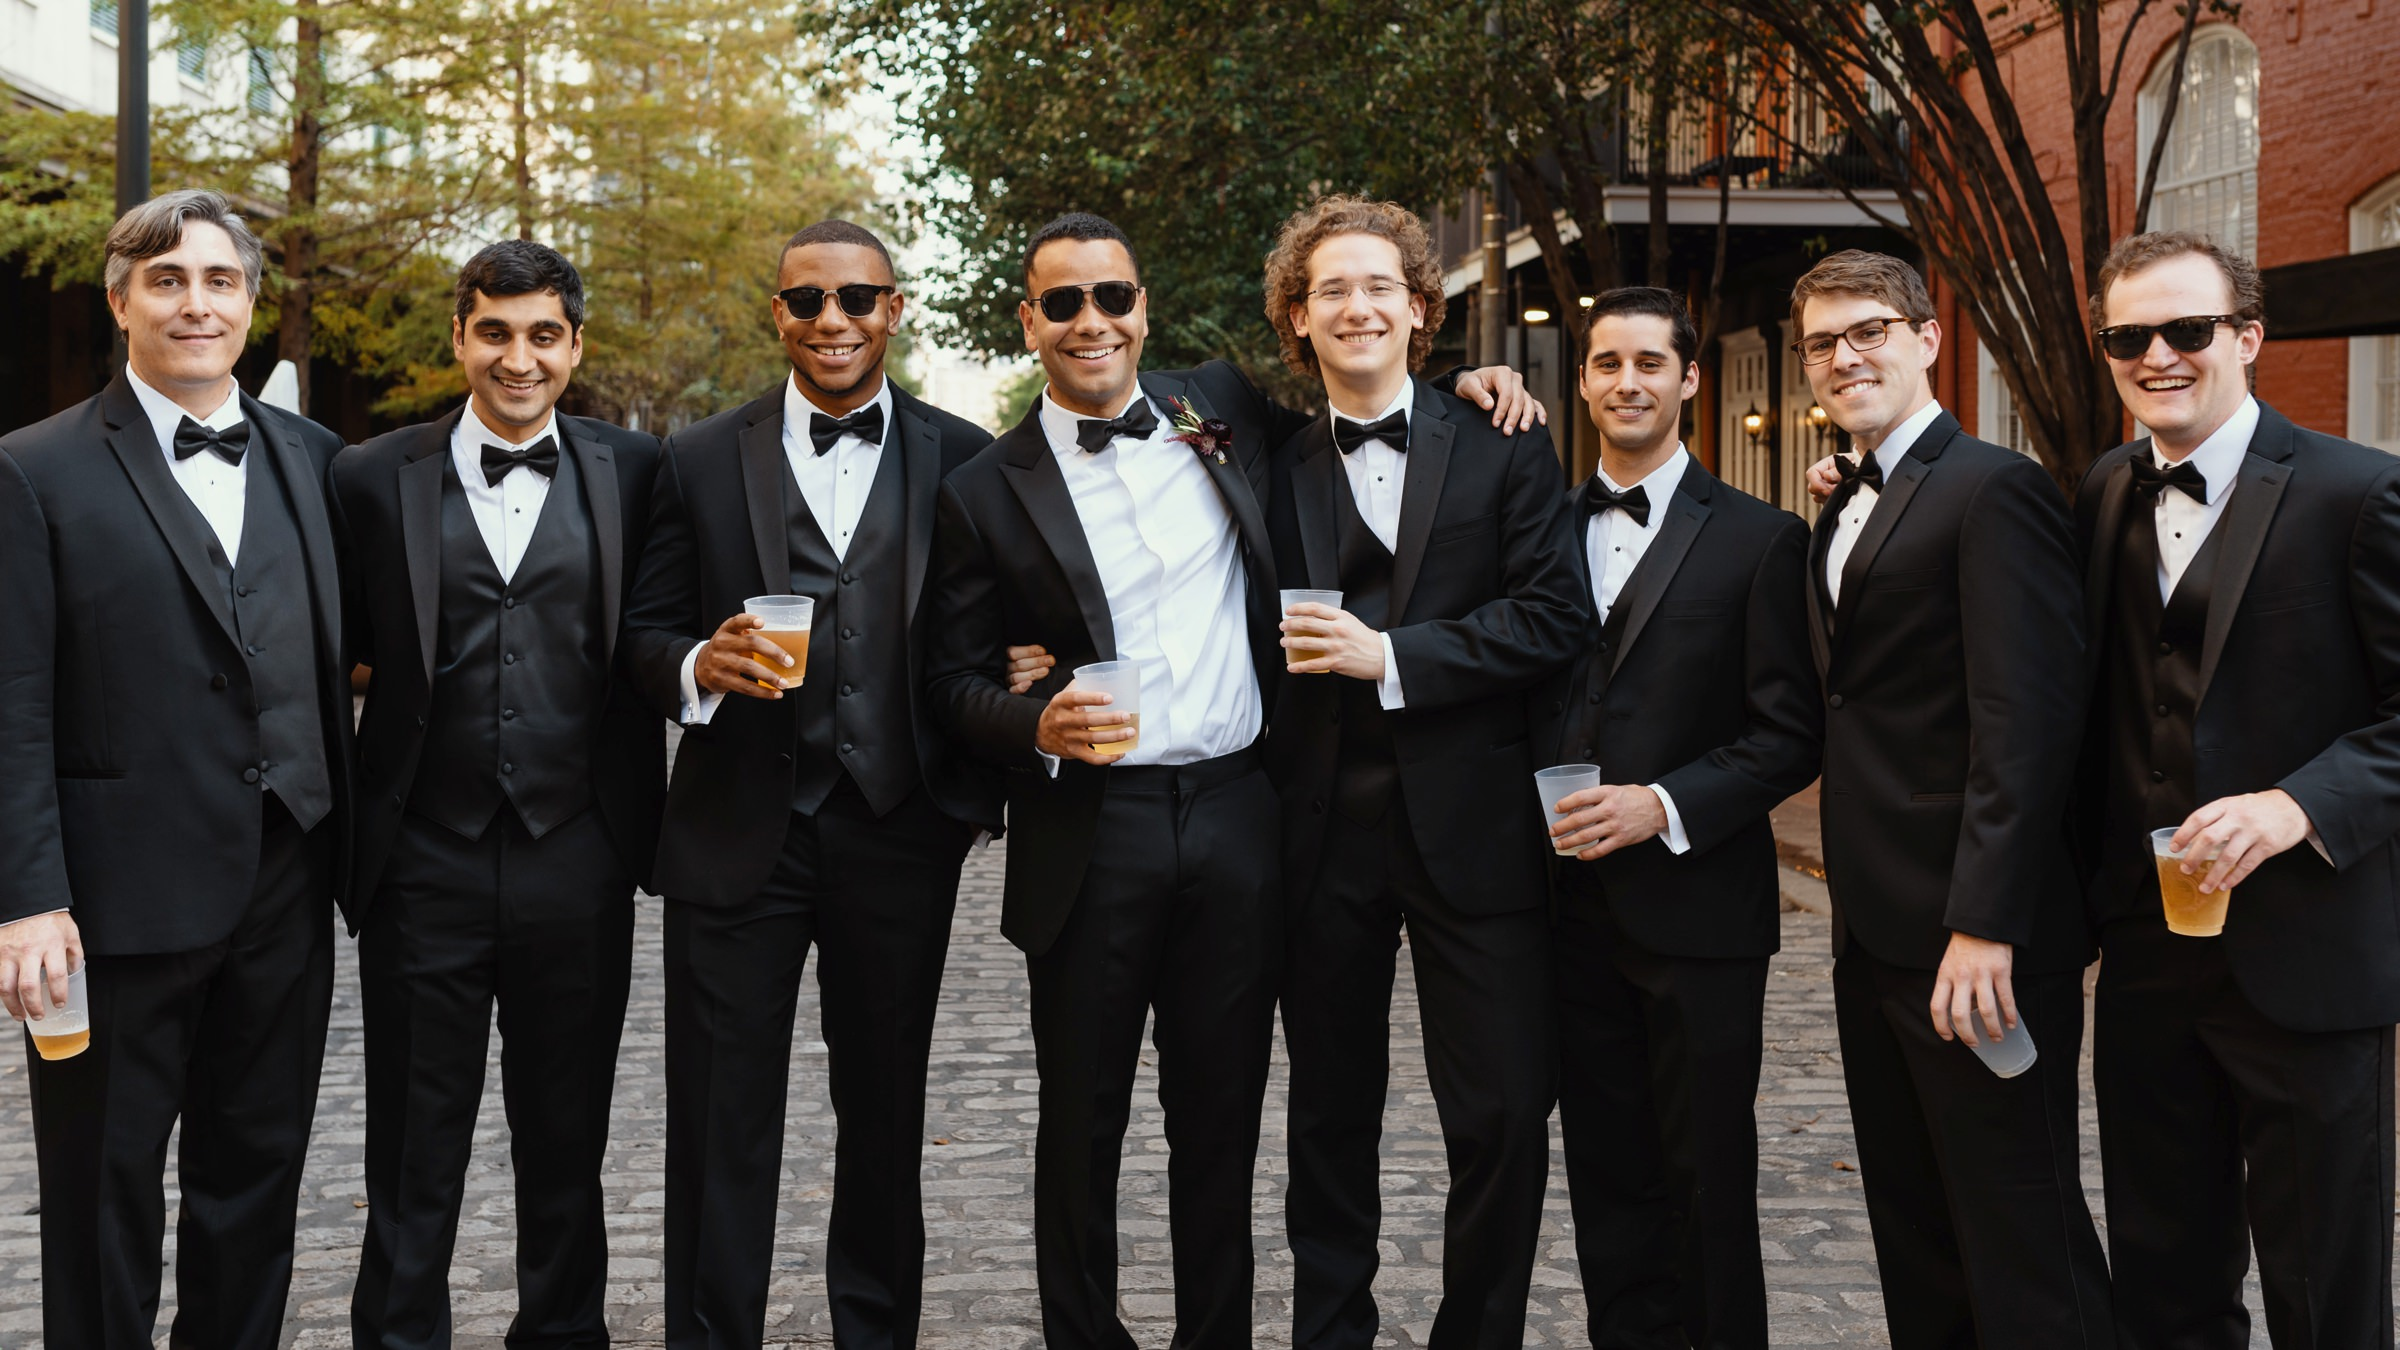 New Orleans groom with groomsmen - photo by Dark Roux